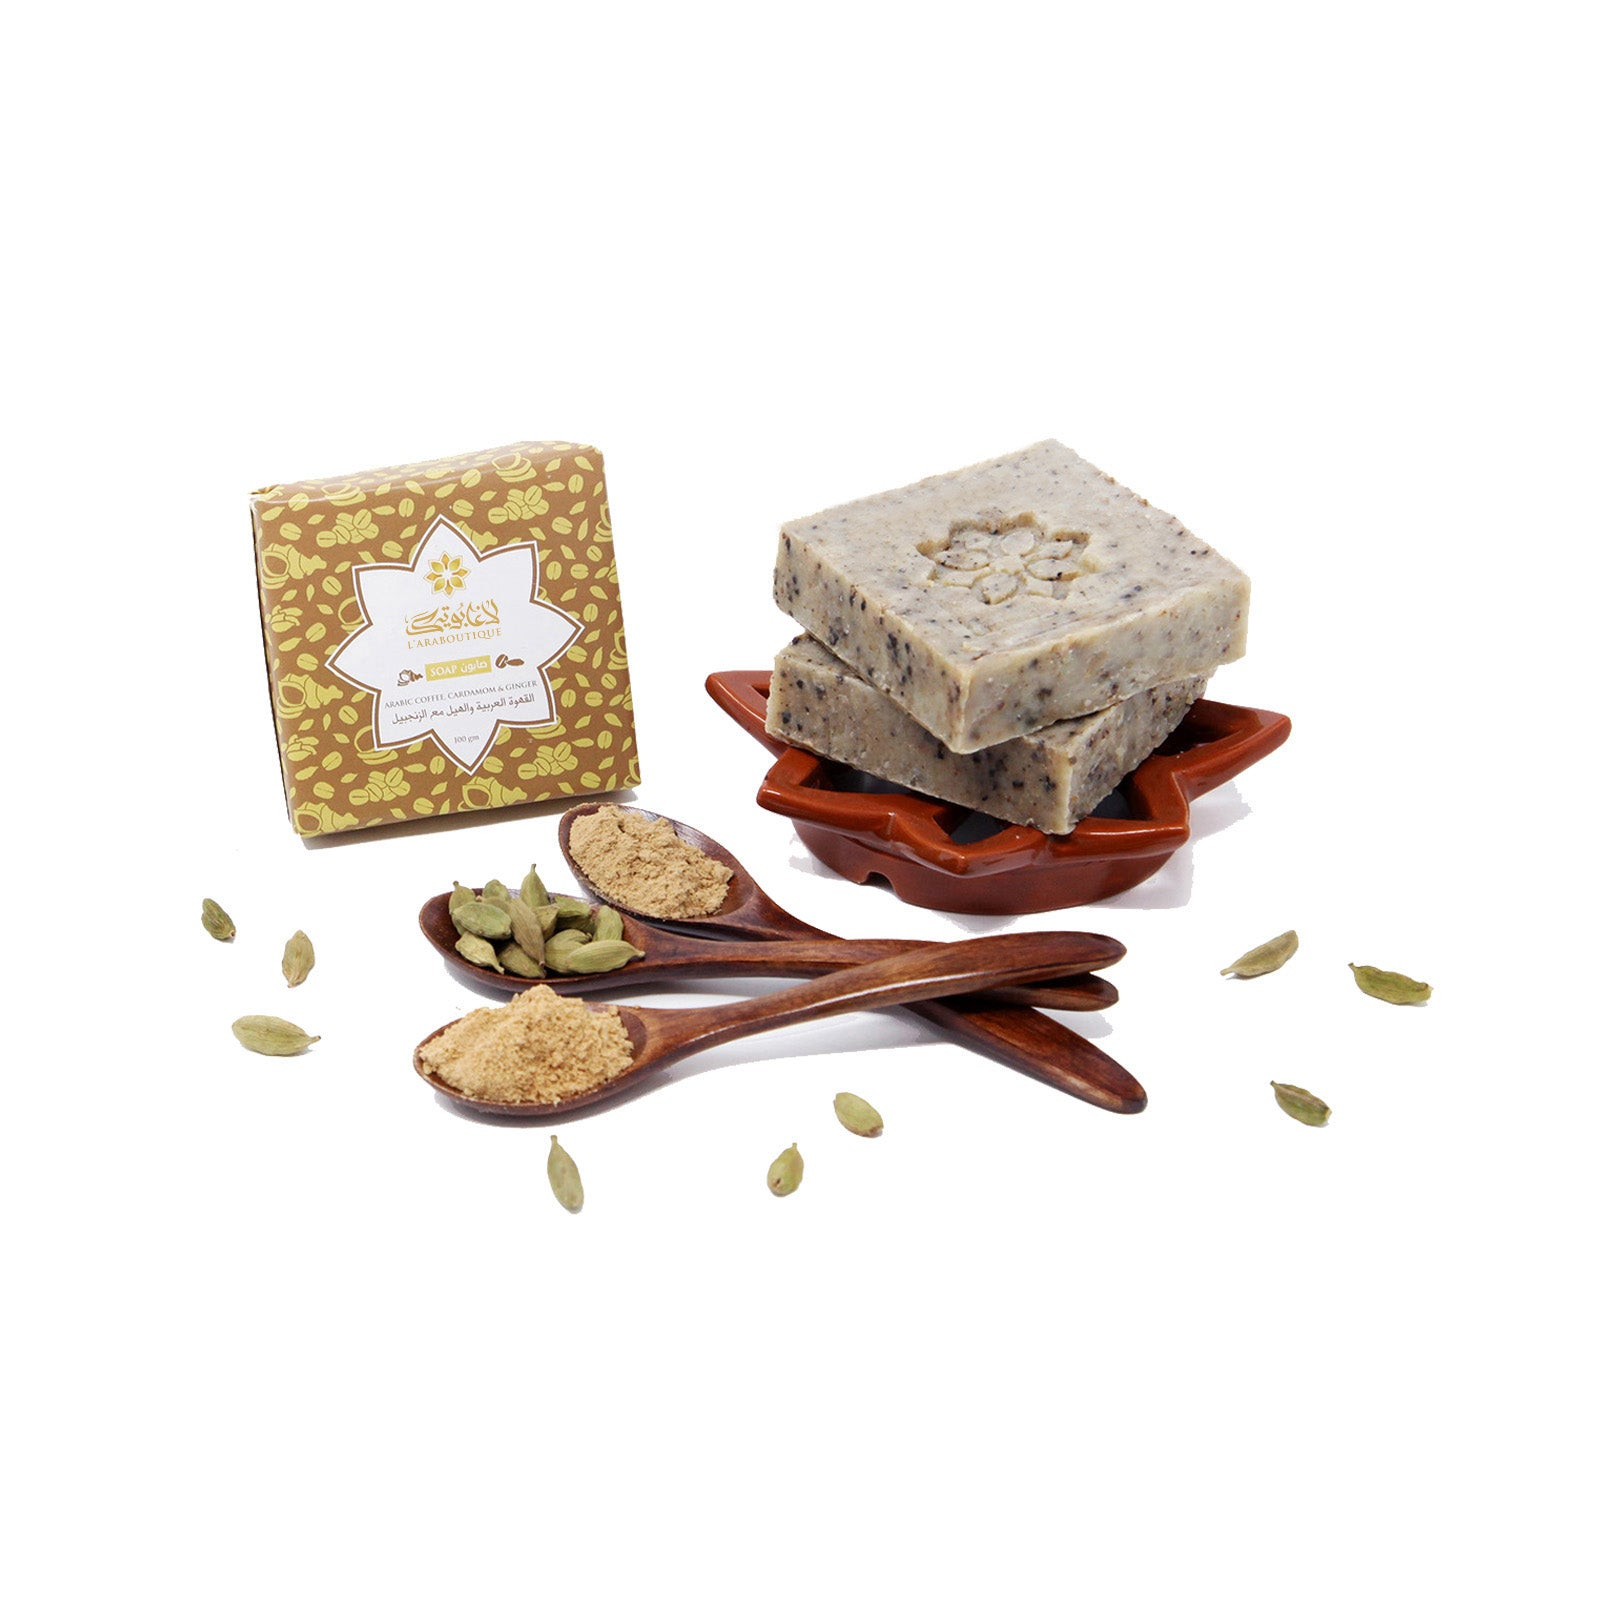 Arabic Coffee, Cardamom and Ginger Soap